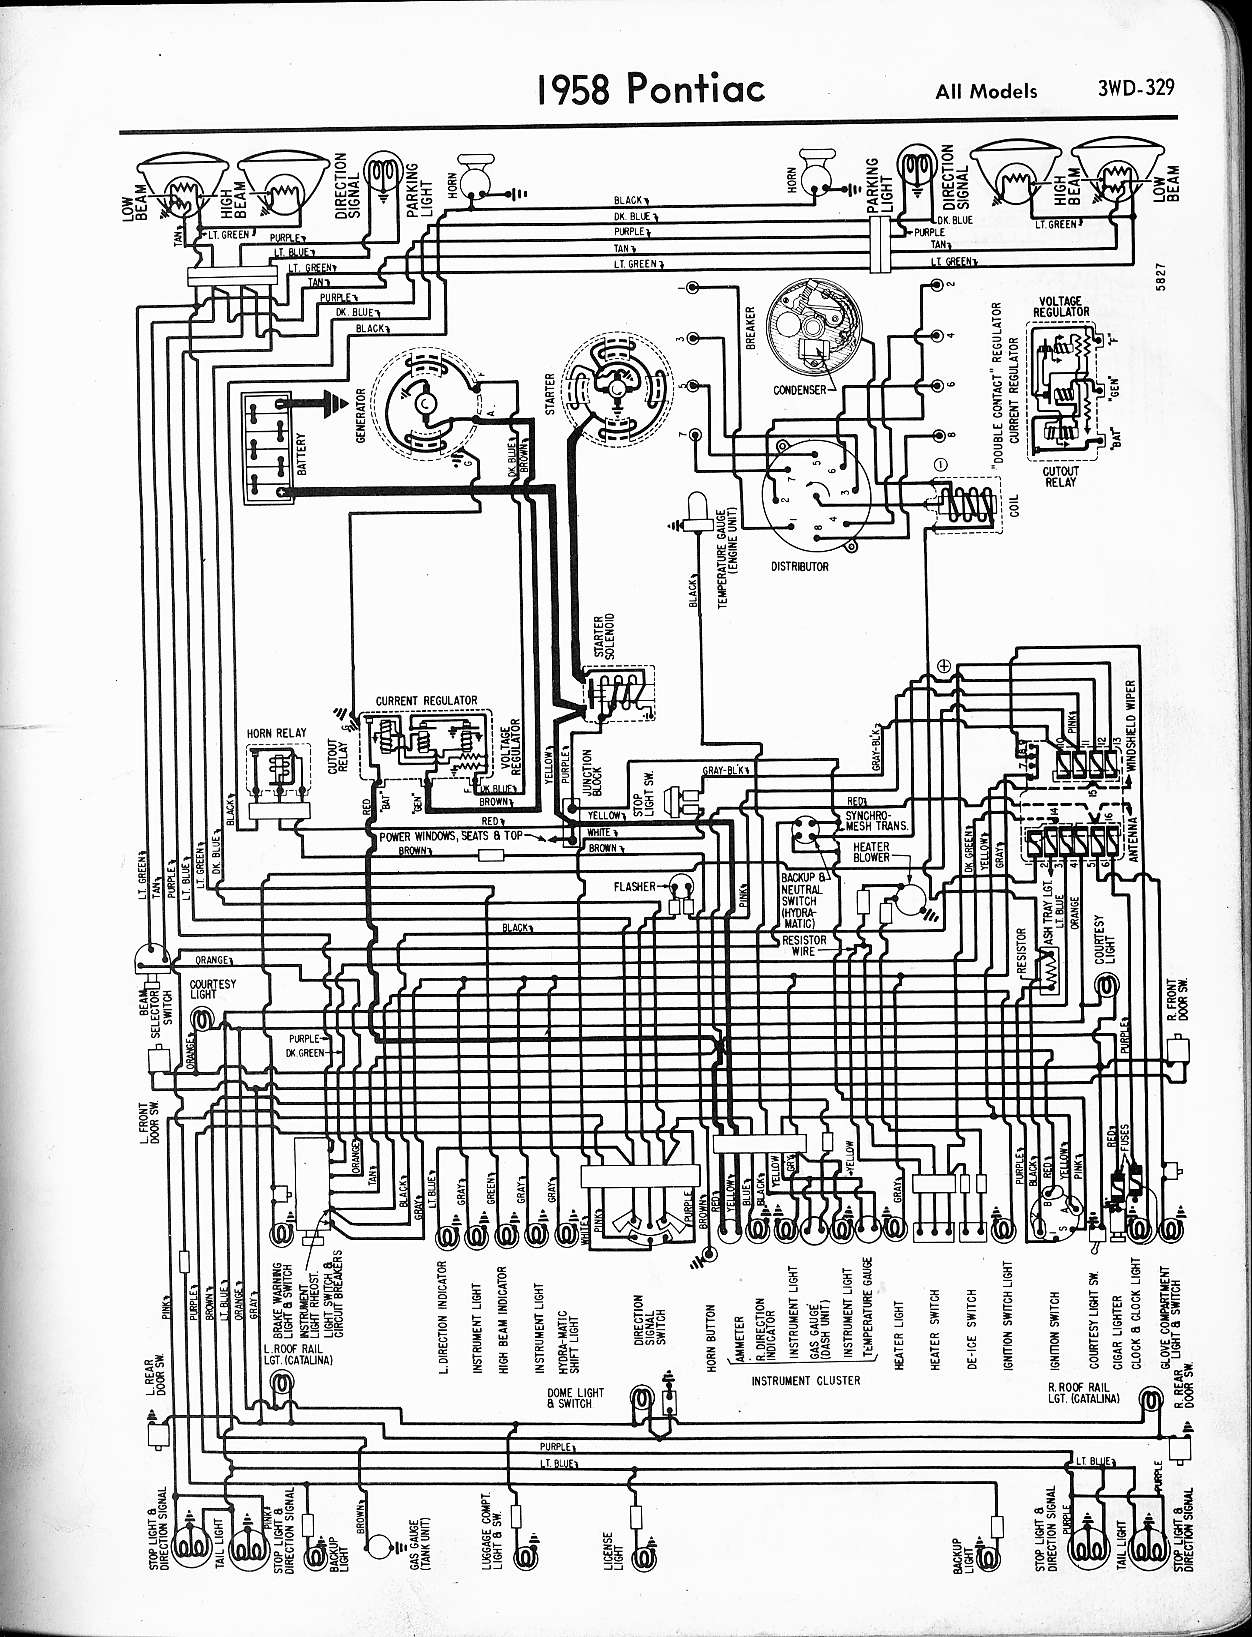 wallace racing wiring diagrams rh wallaceracing com 1964 pontiac tempest wiring diagram 1964 pontiac lemans wiring diagram